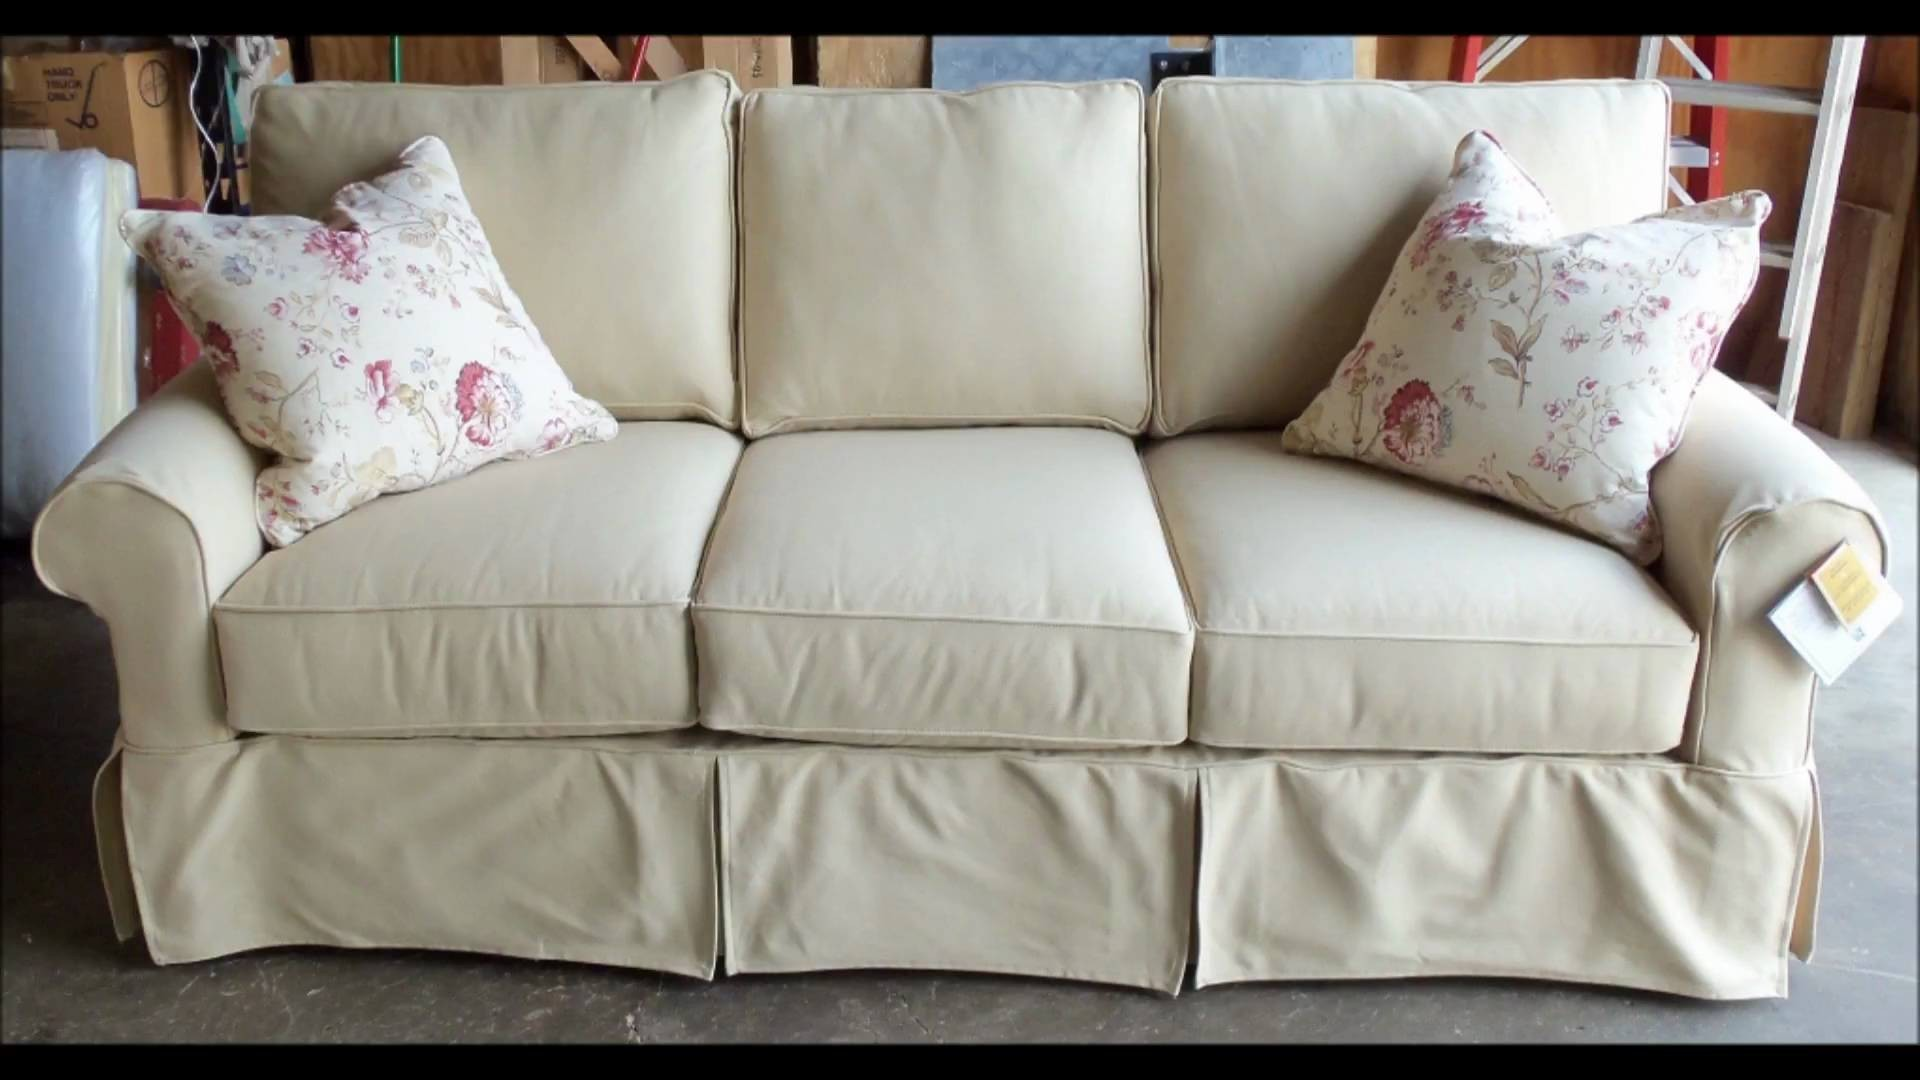 Contemporary Slipcovers For Sofas With Cushions Separate Picture